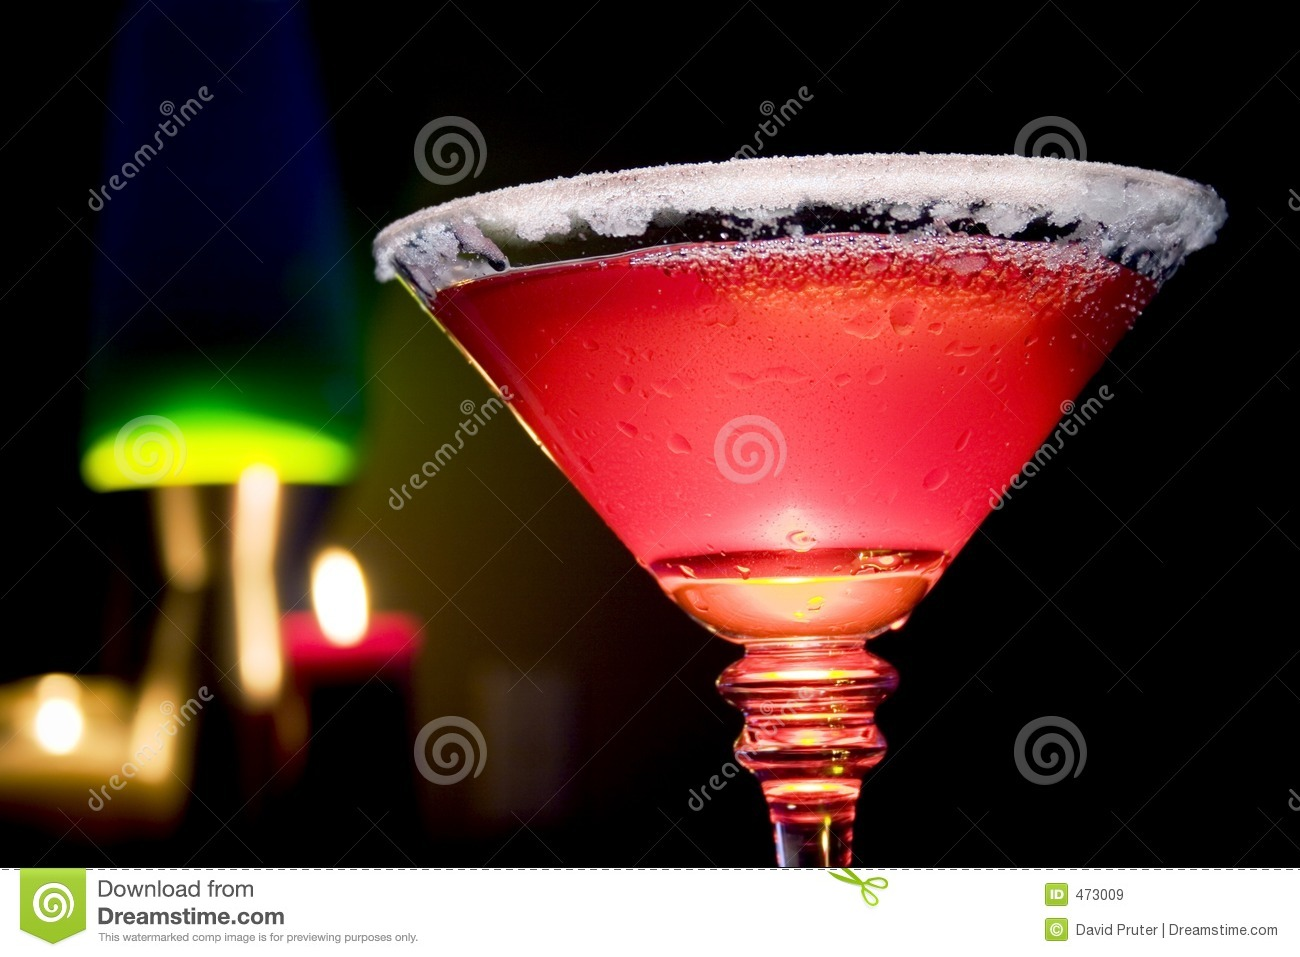 Download Watermelon Sugar Coated Martini Stock Image - Image of cold, spirits: 473009